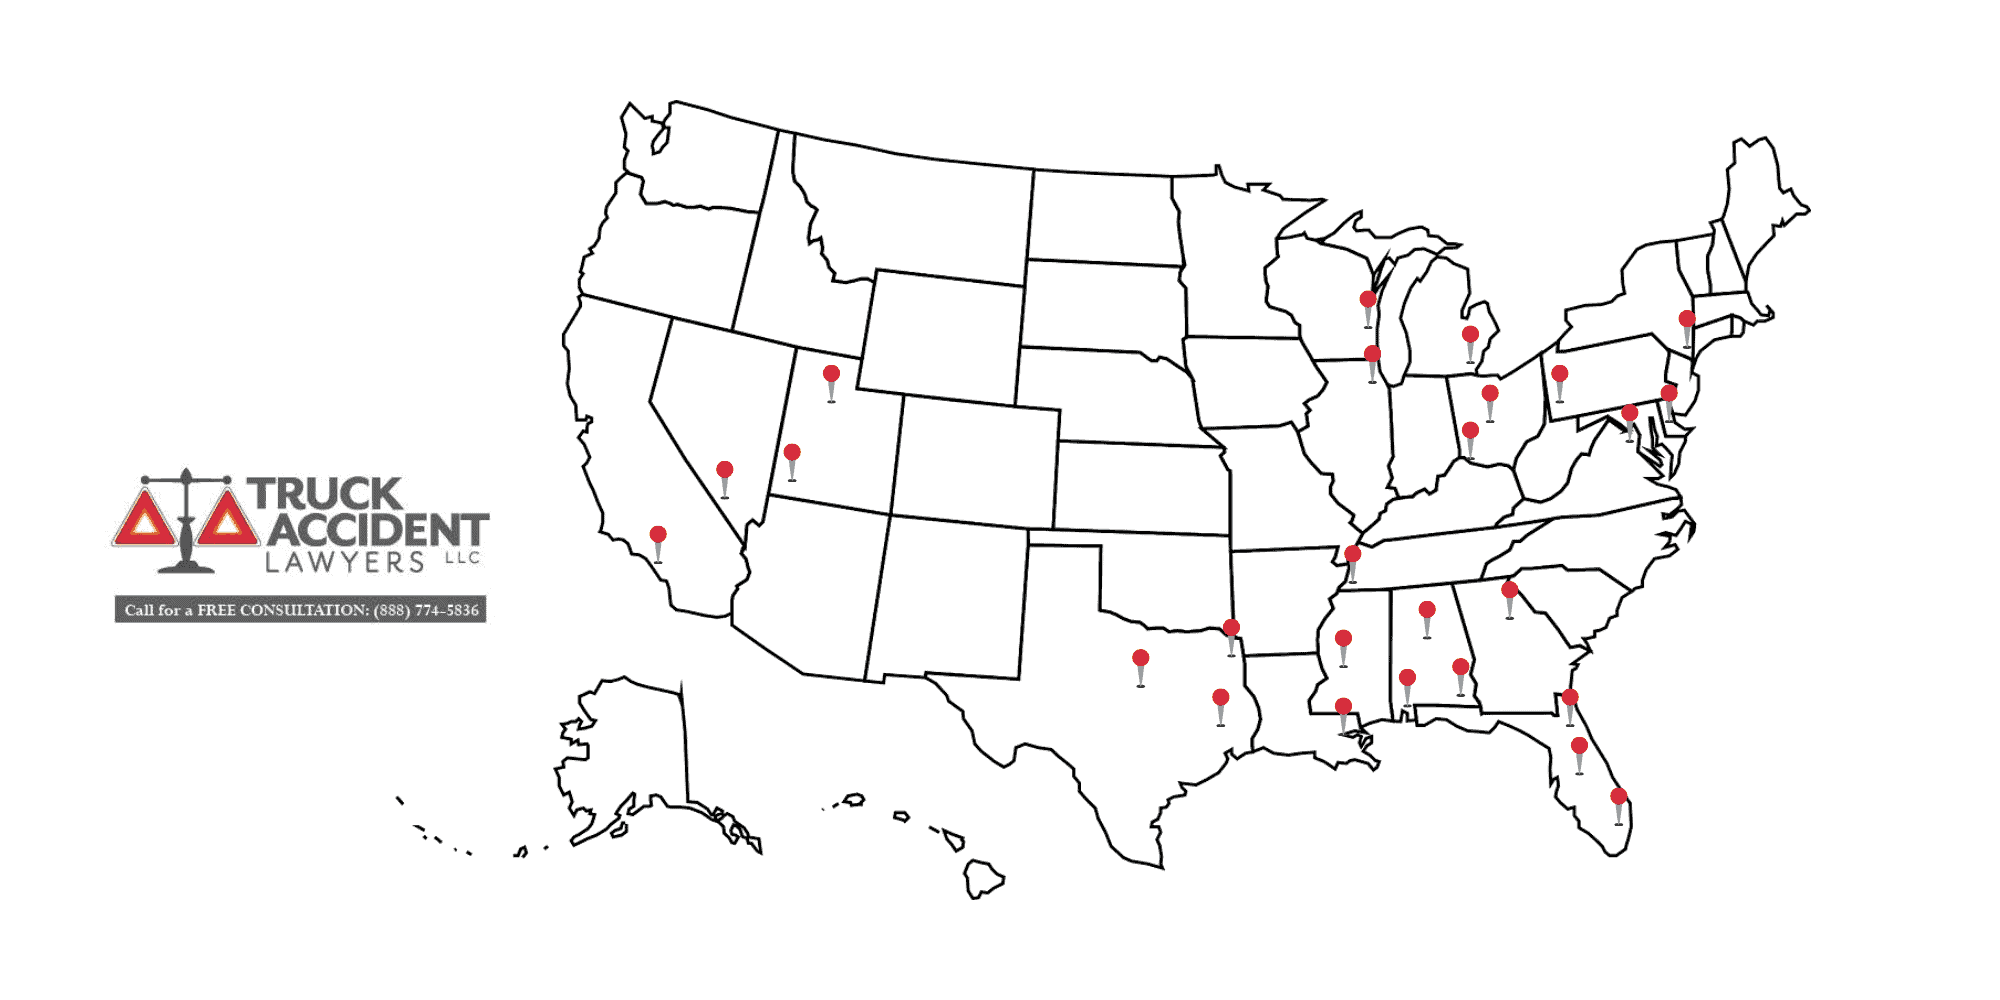 Truck Accident Lawyers Office Map